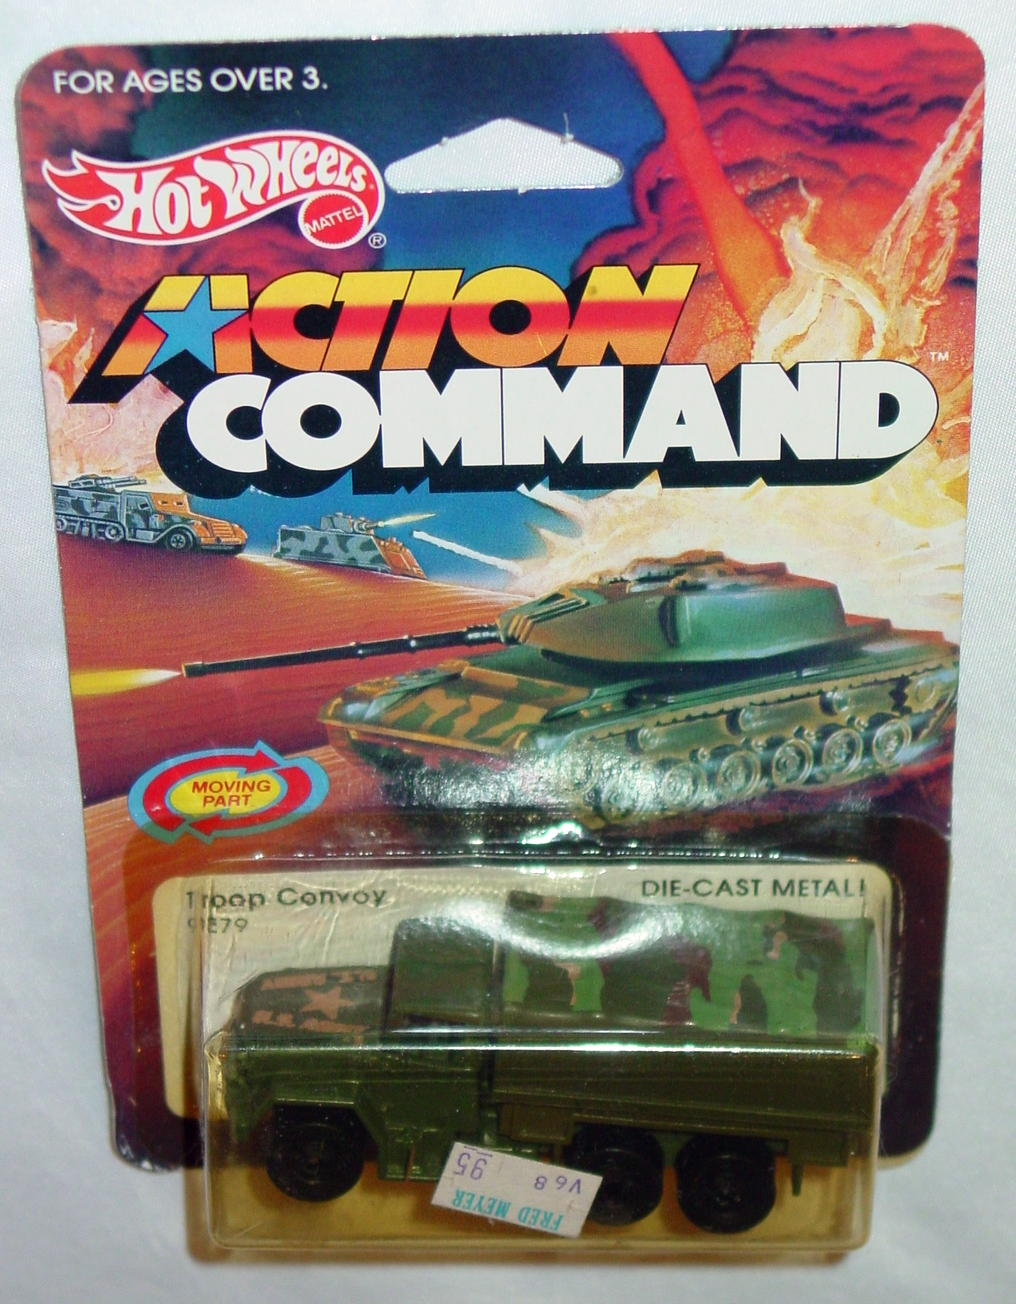 Blackwalls 4921 B - Troop Convoy Olive with cover tampo